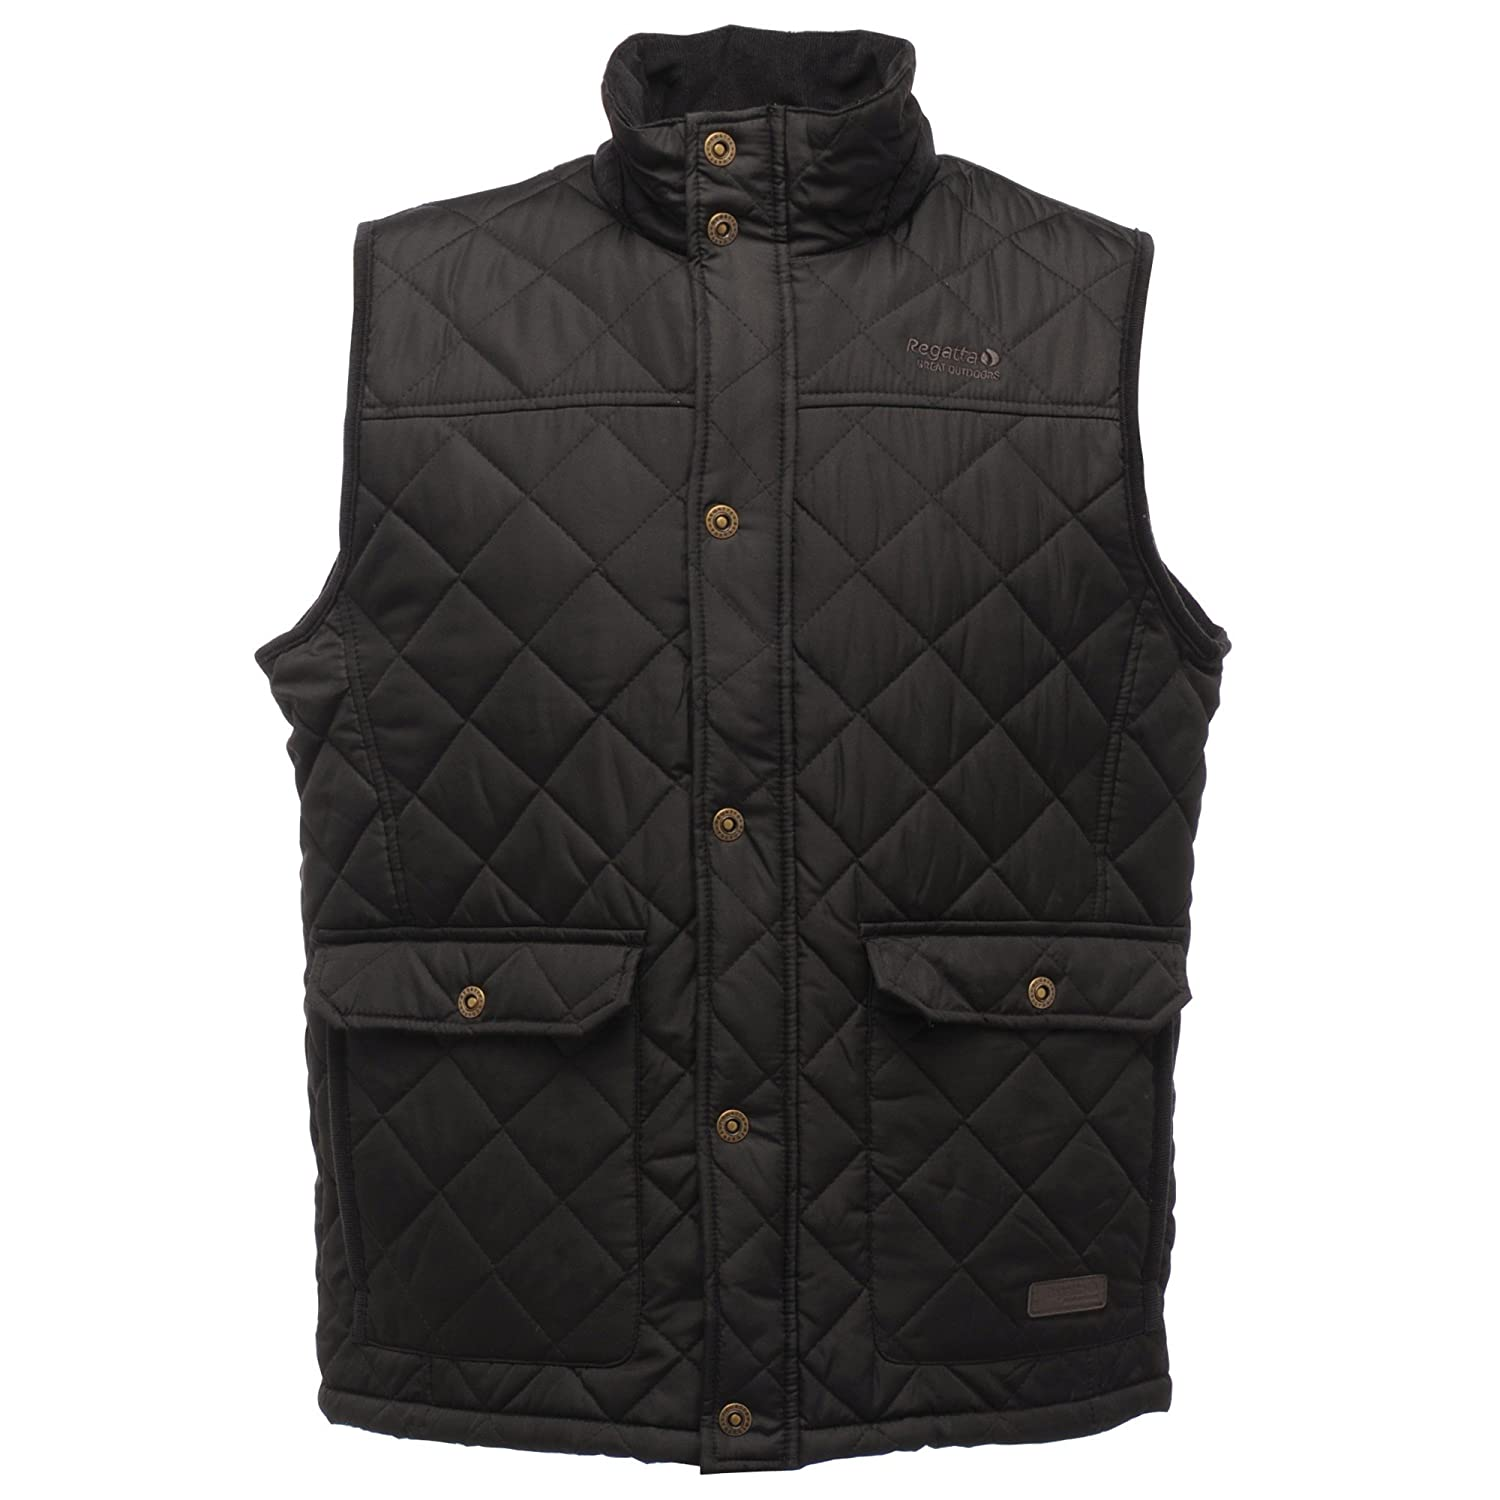 4d14835cf0e Regatta Great Outdoors Mens Heritage Rigby Quilted Bodywarmer (XXXXL) (Black)   Amazon.co.uk  Clothing